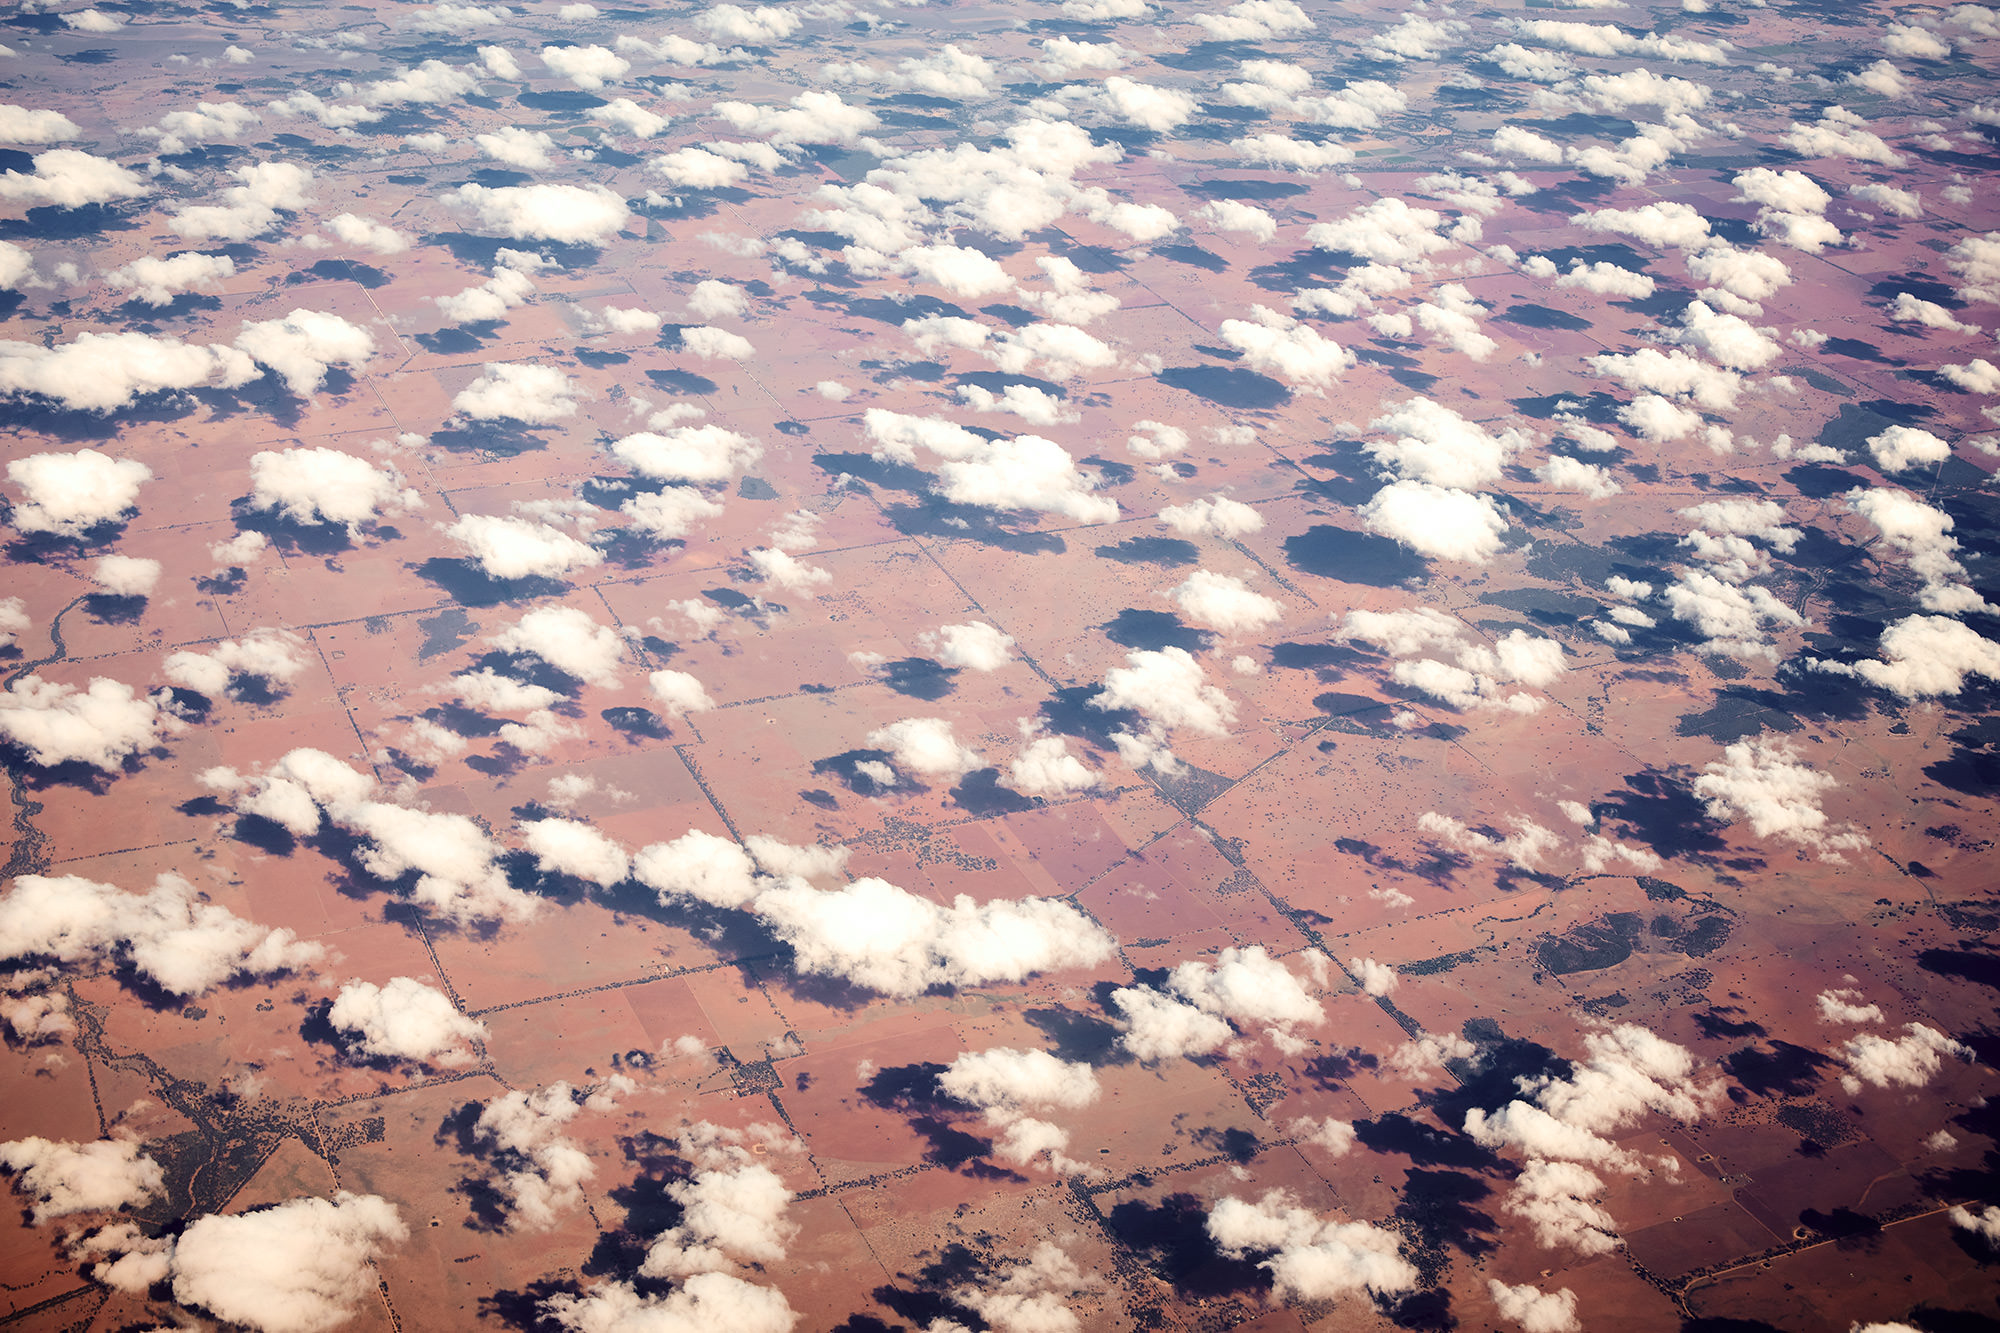 On the way over crossing Australia